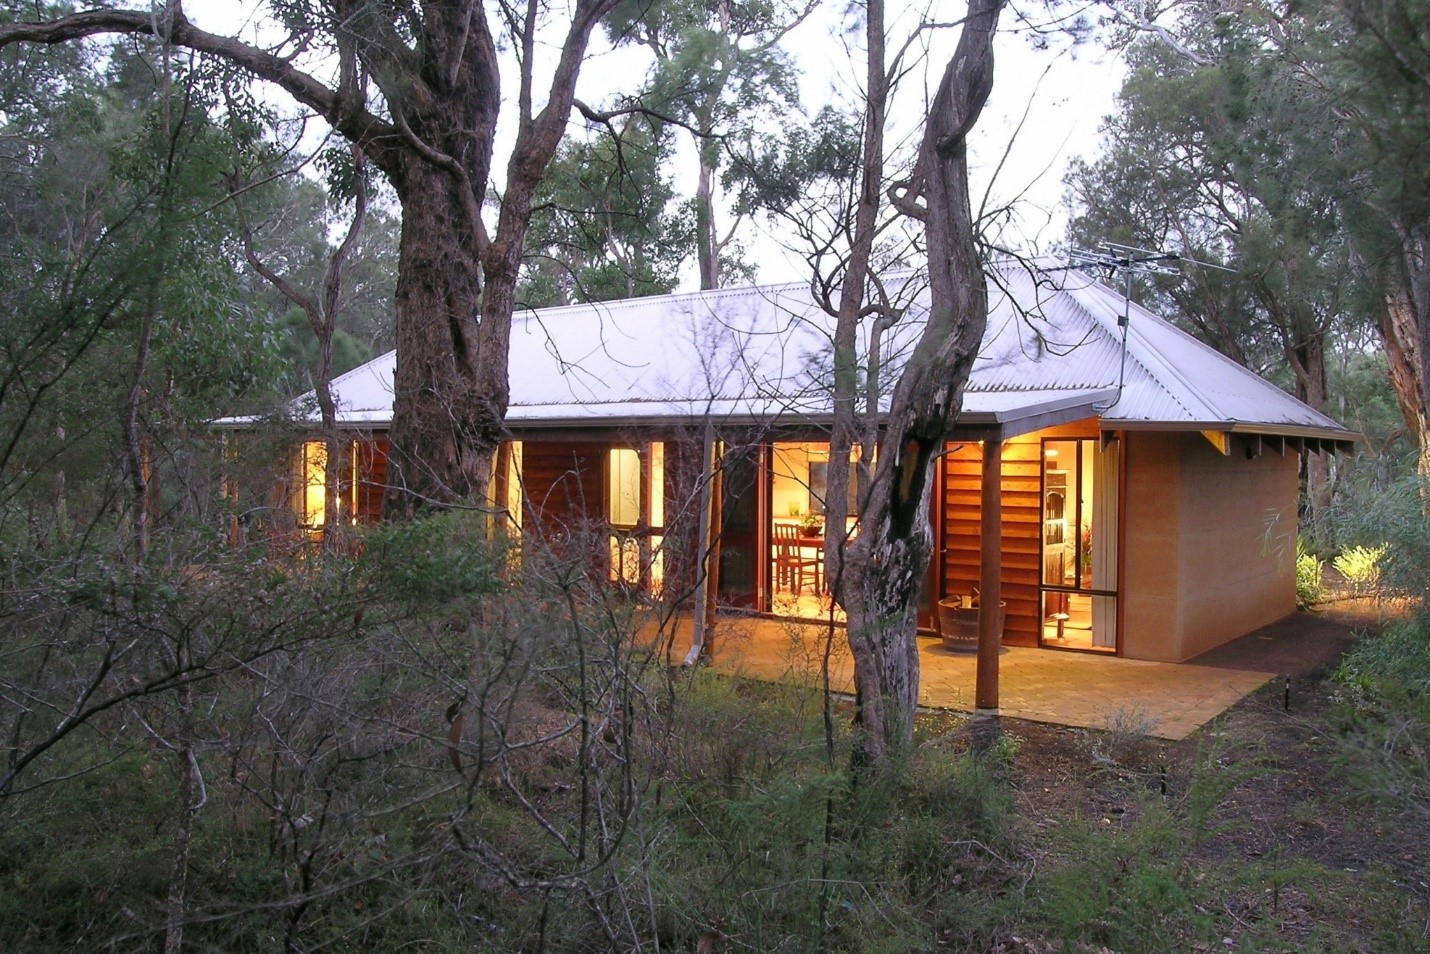 Margaret River Accommodation: Do's and Don'ts